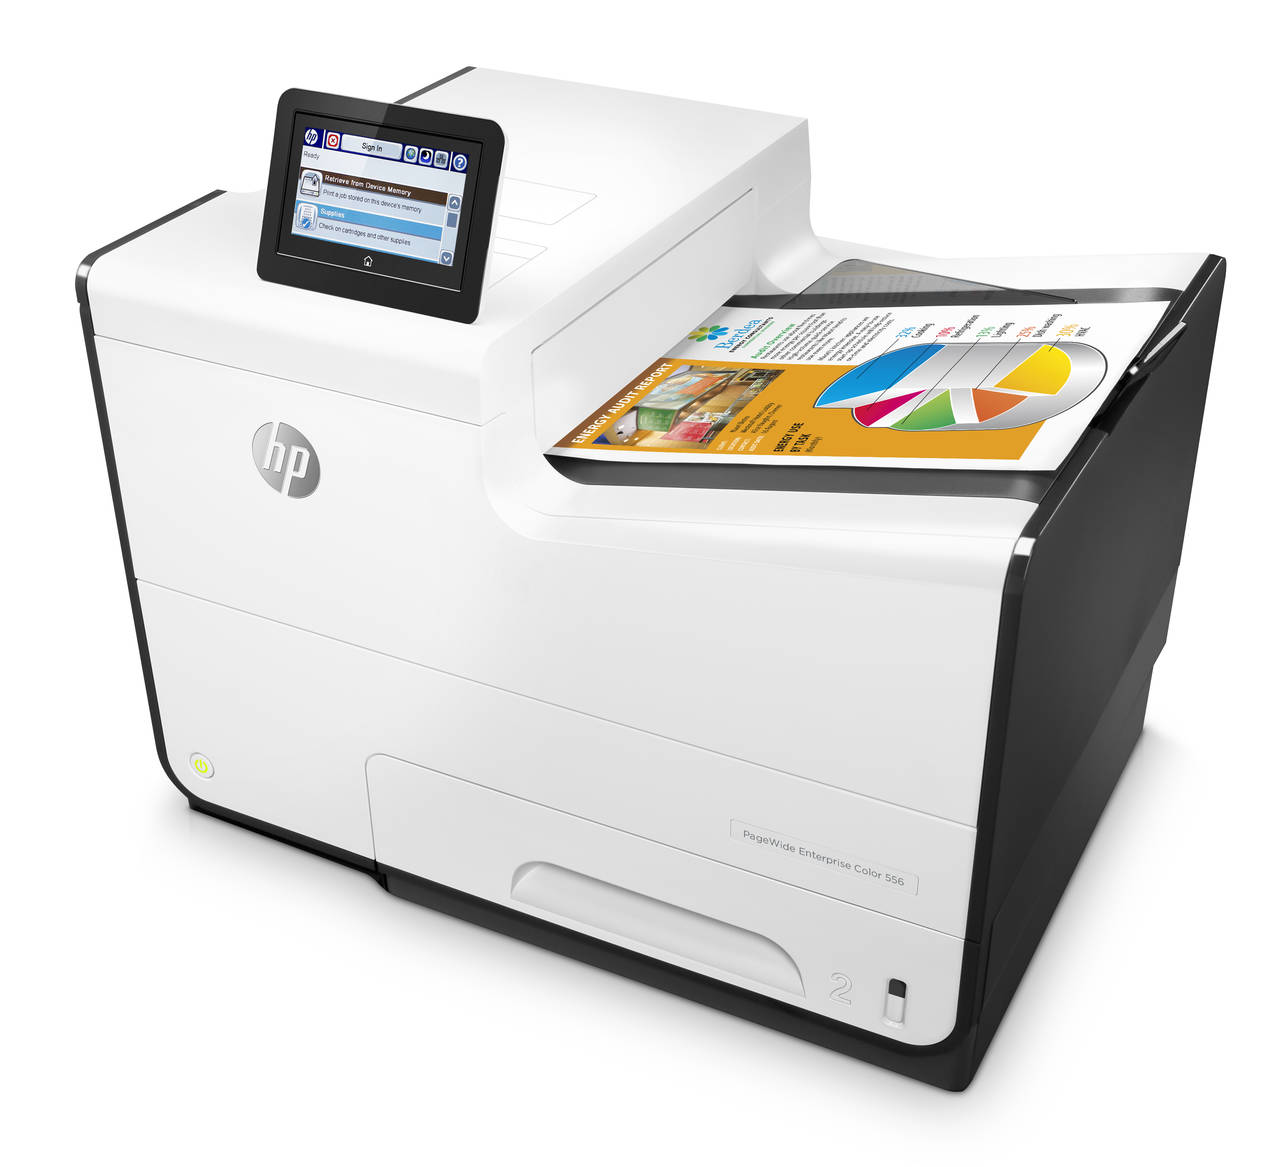 1-HP PageWide Enterprise Color 556dn Printer